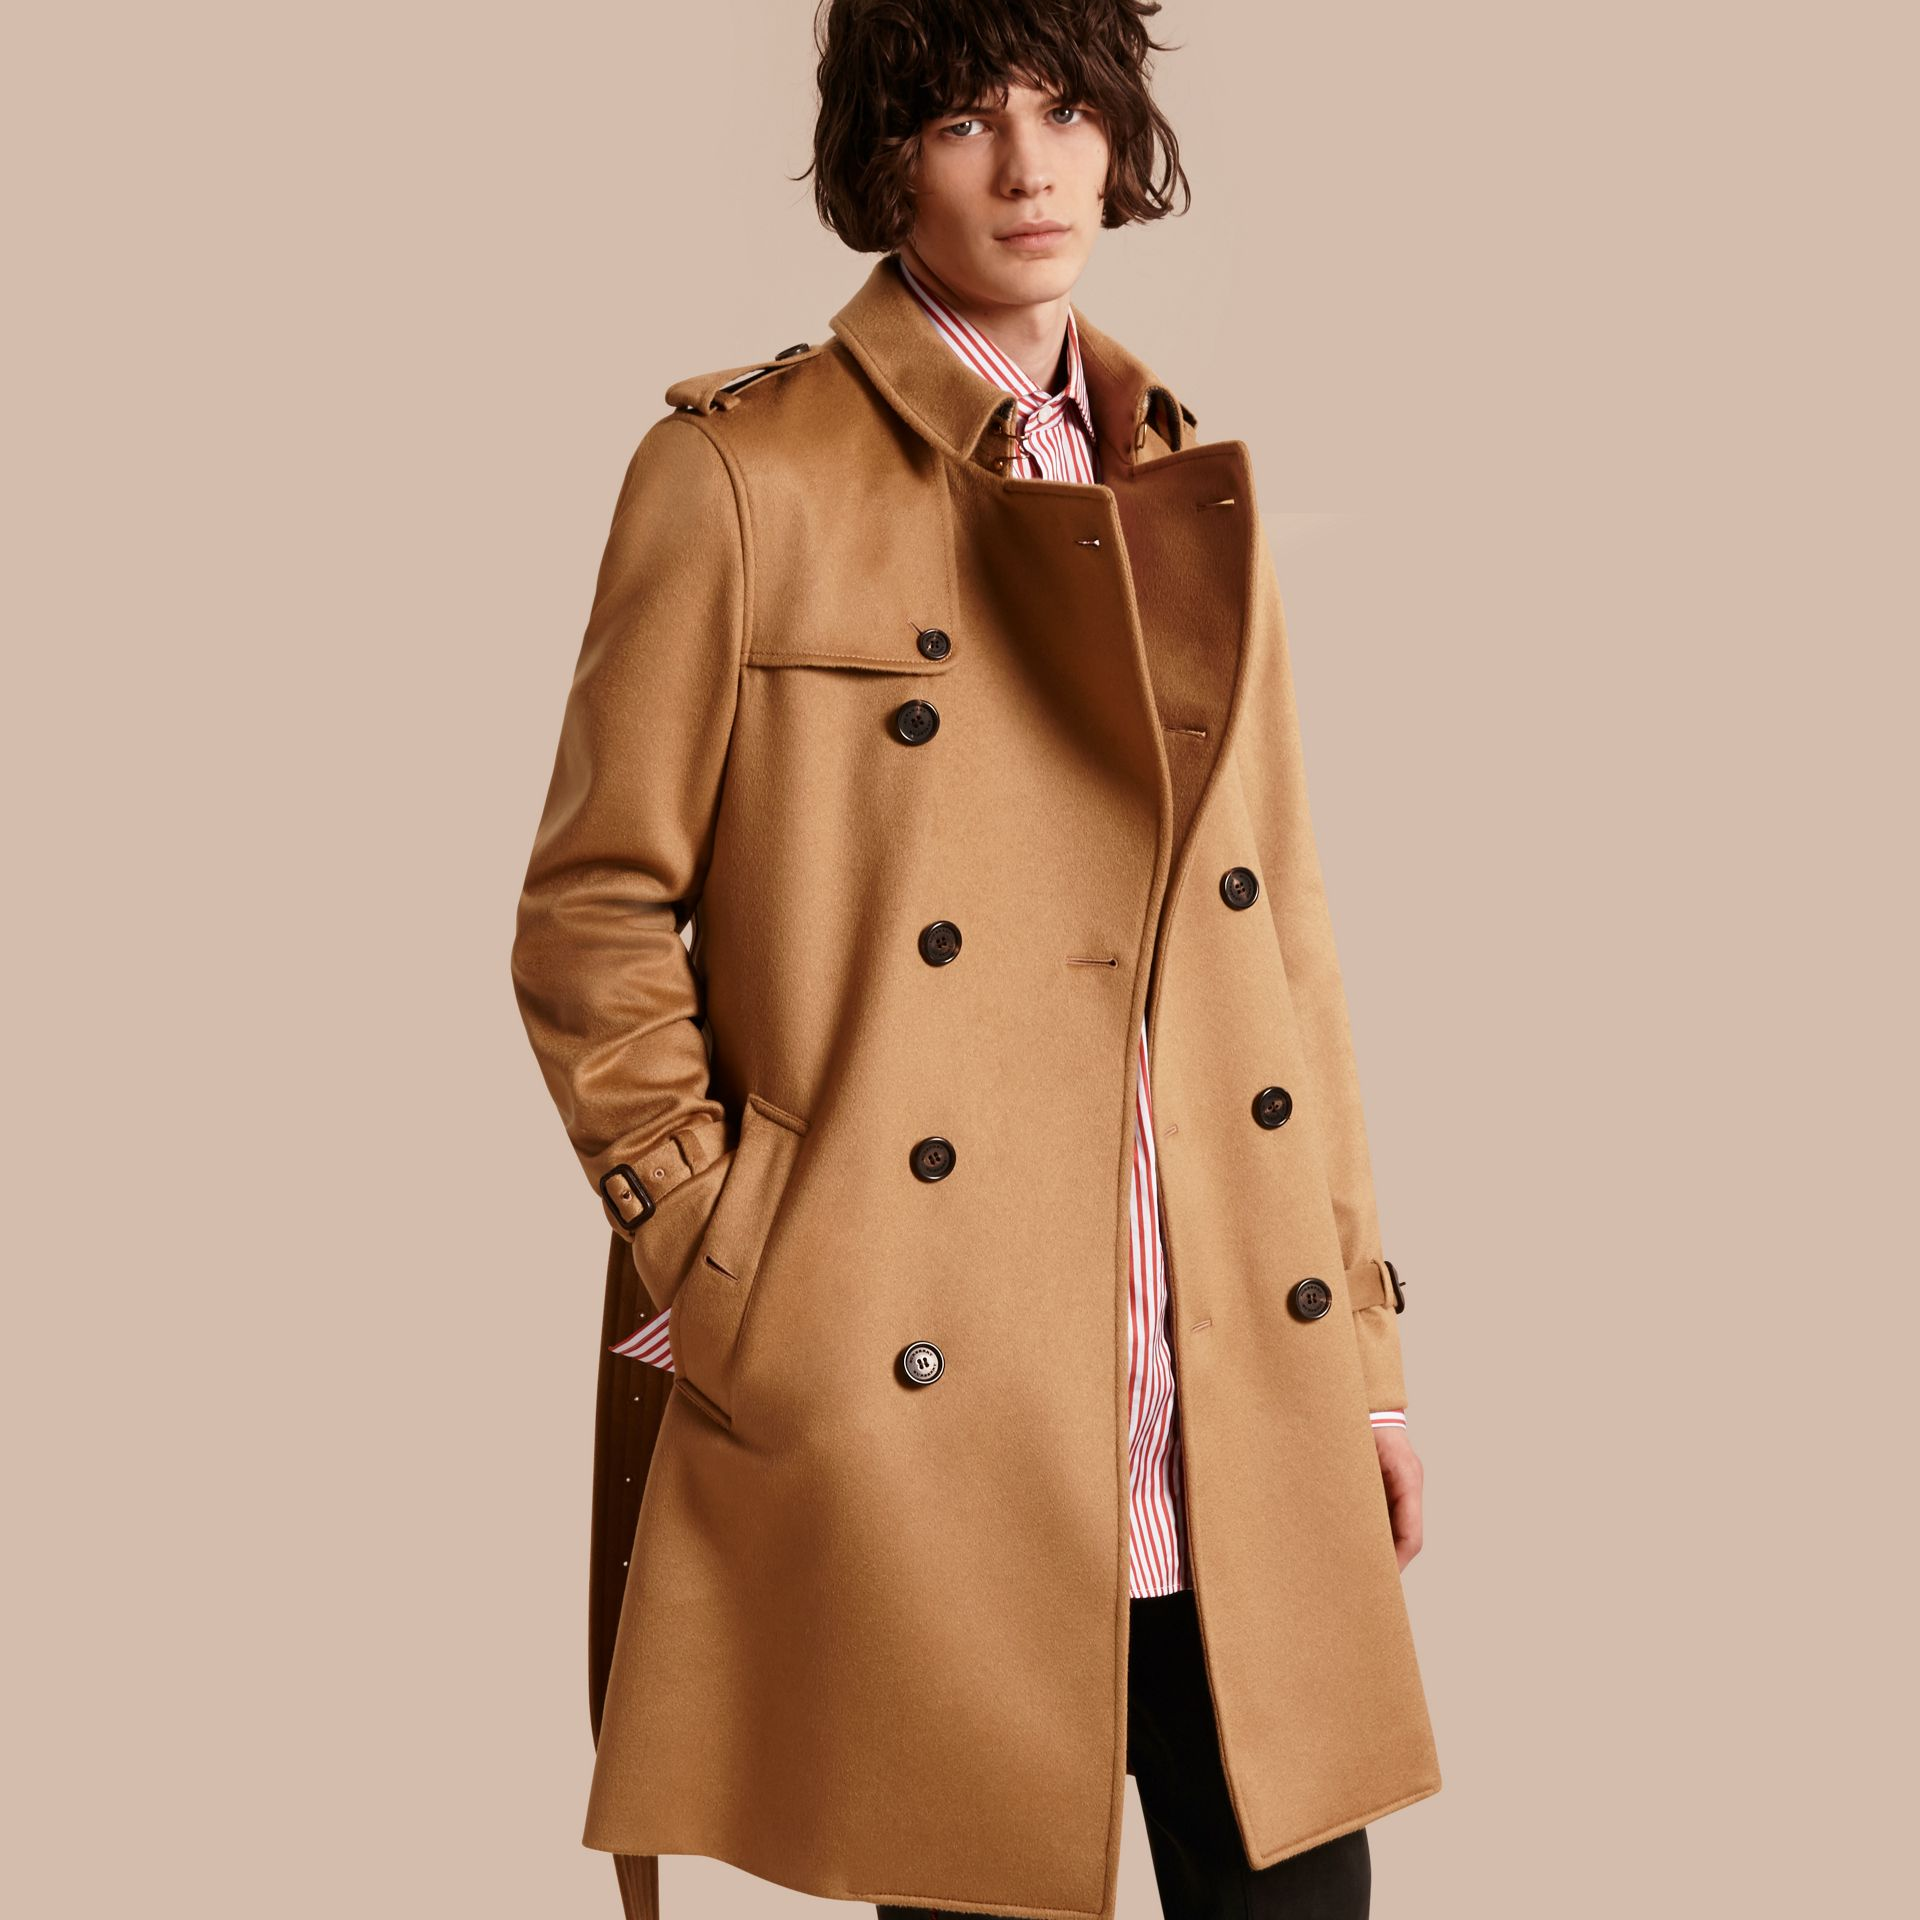 Cashmere Trench Coat in Dark Camel - Men | Burberry Hong Kong - gallery image 1